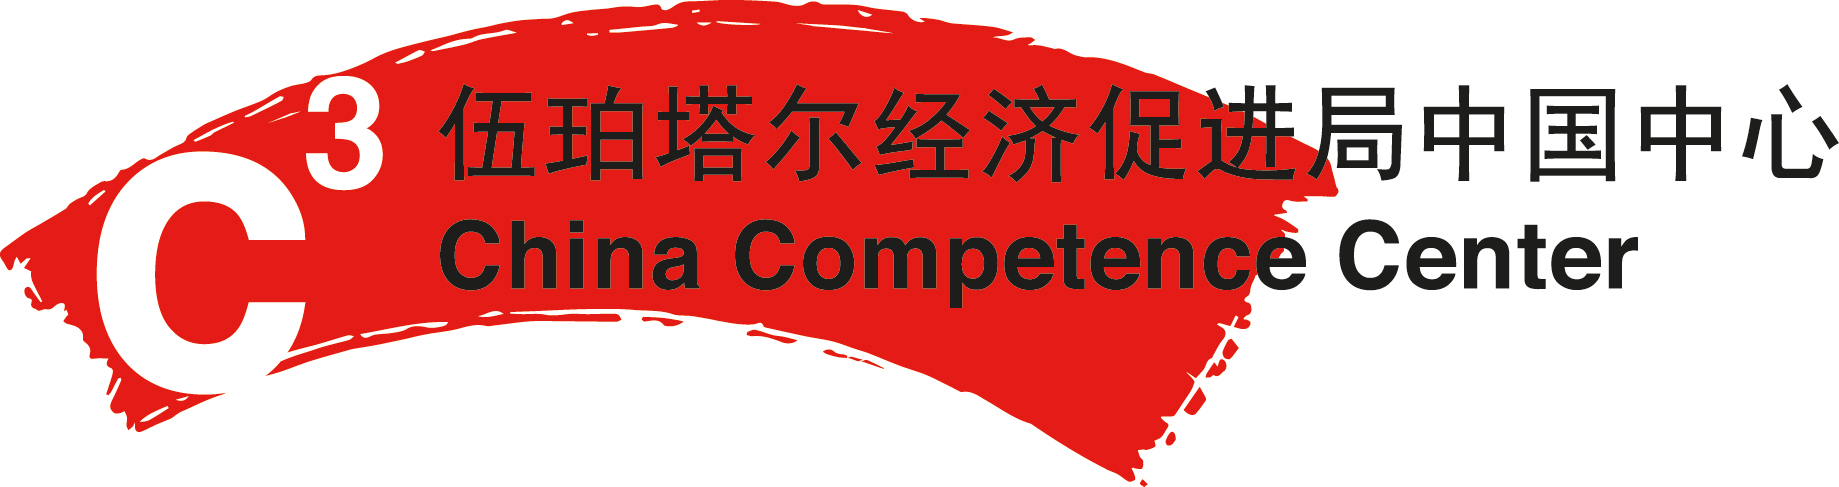 Logo des China Competence Centers Wuppertal